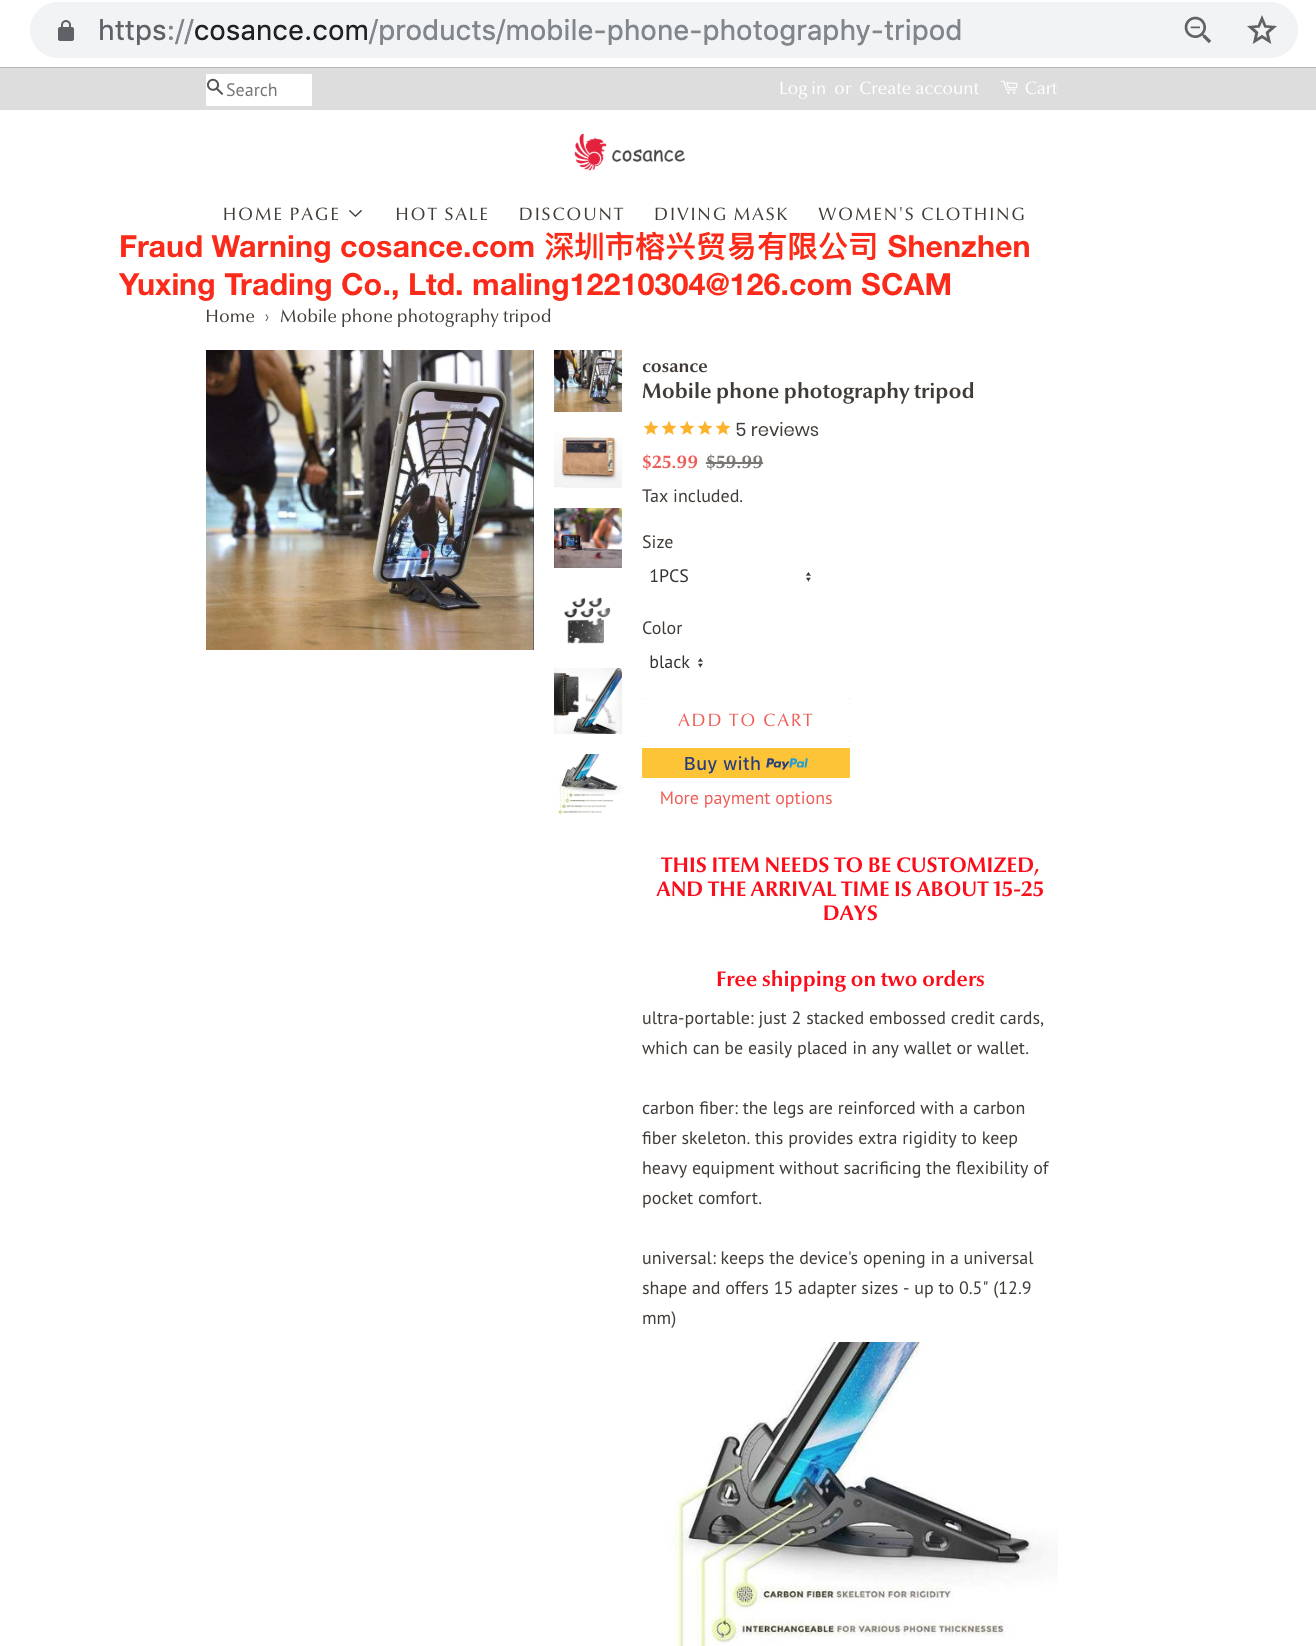 Fraud Warning cosance.com 深圳市榕兴贸易有限公司 Shenzhen Yuxing Trading Co., Ltd. maling12210304@126.com SCAM